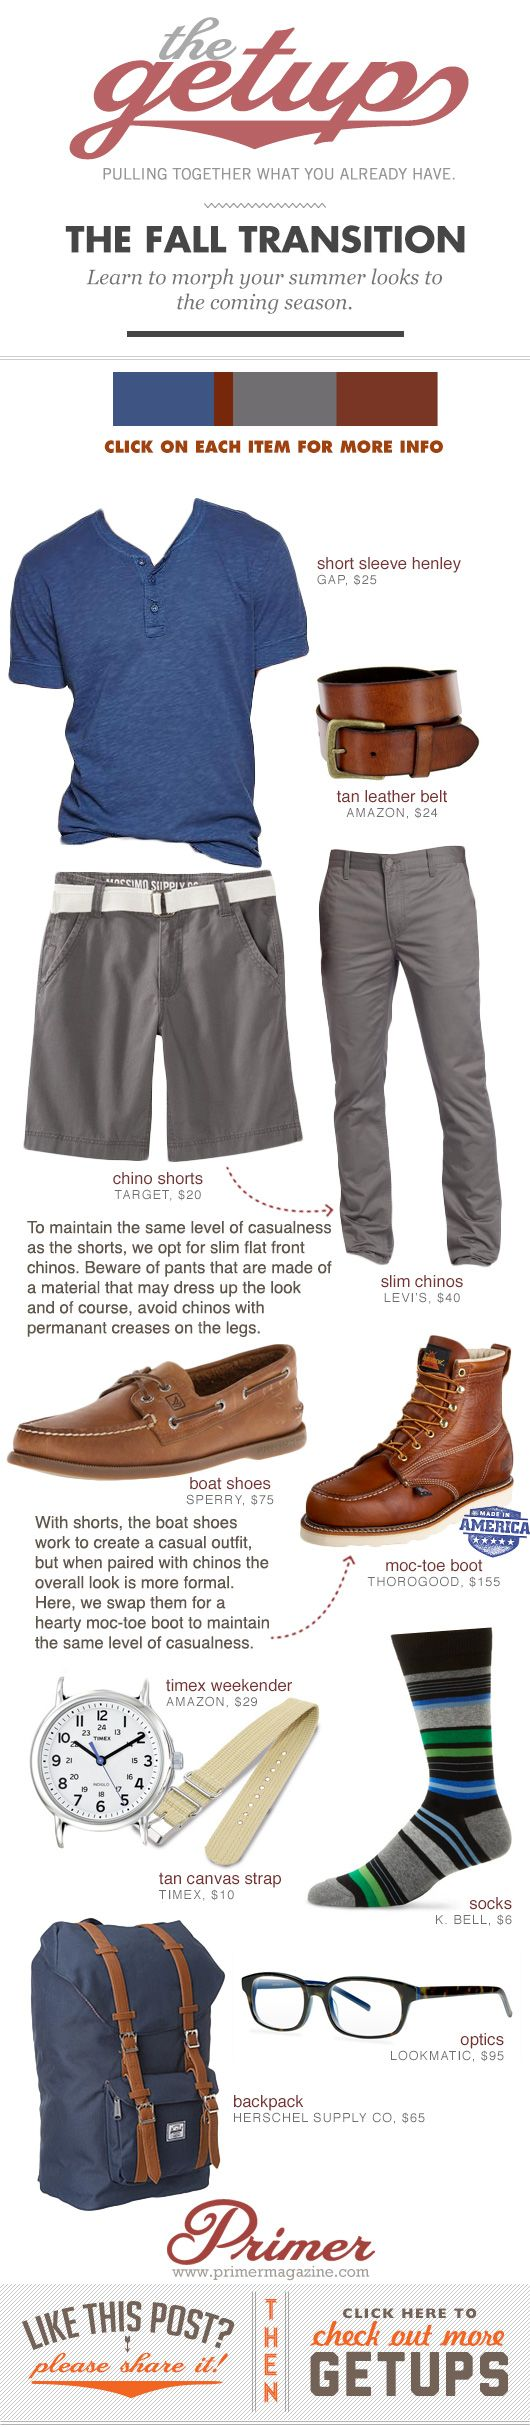 Fall Getup Week: The Fall Transition - Primer